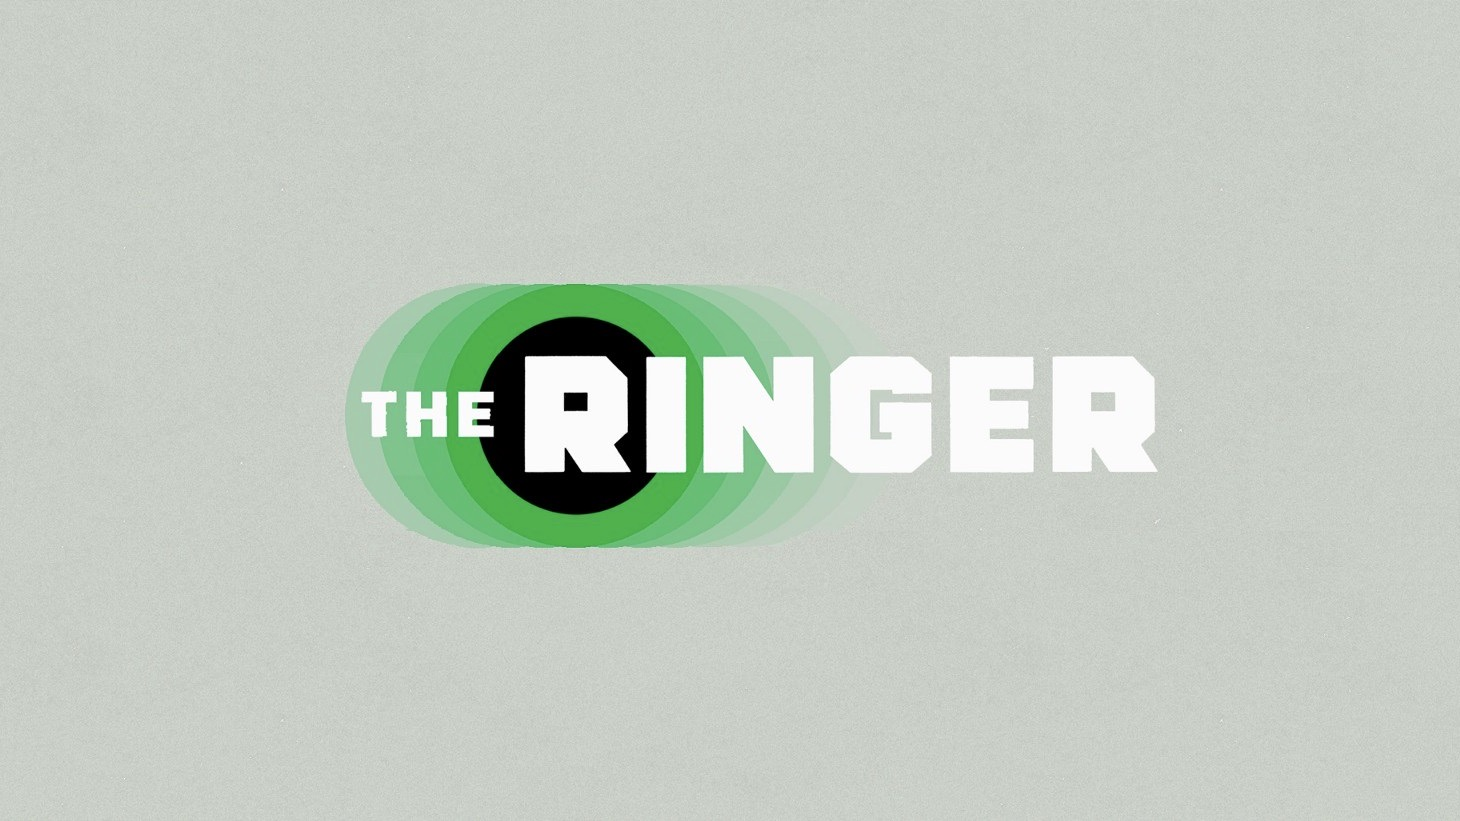 As Apple prepares original podcasts, Spotify reportedly in talks to acquire the 'Ringer'